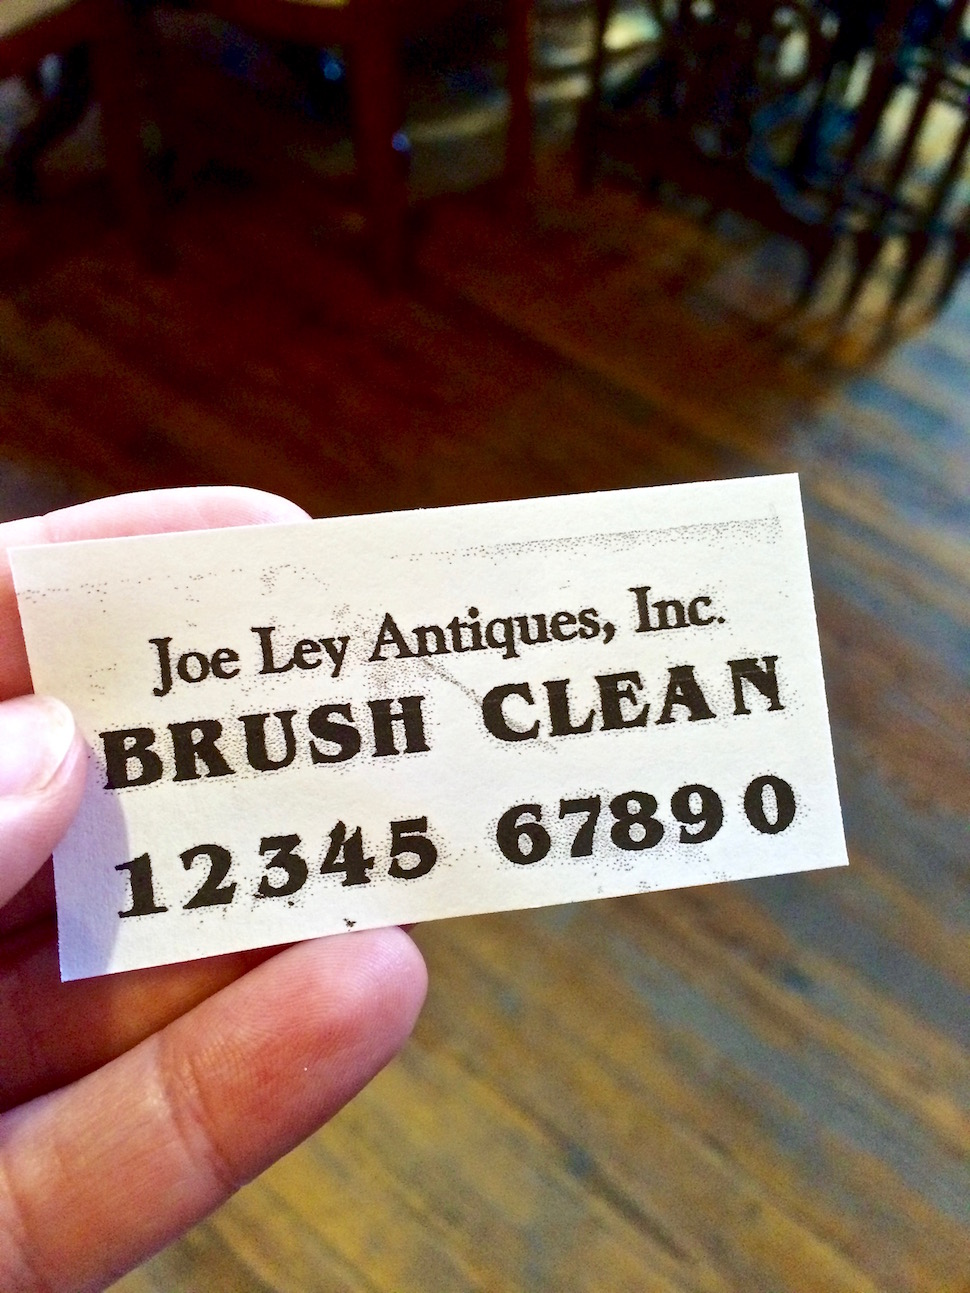 Joe Ley Antiques